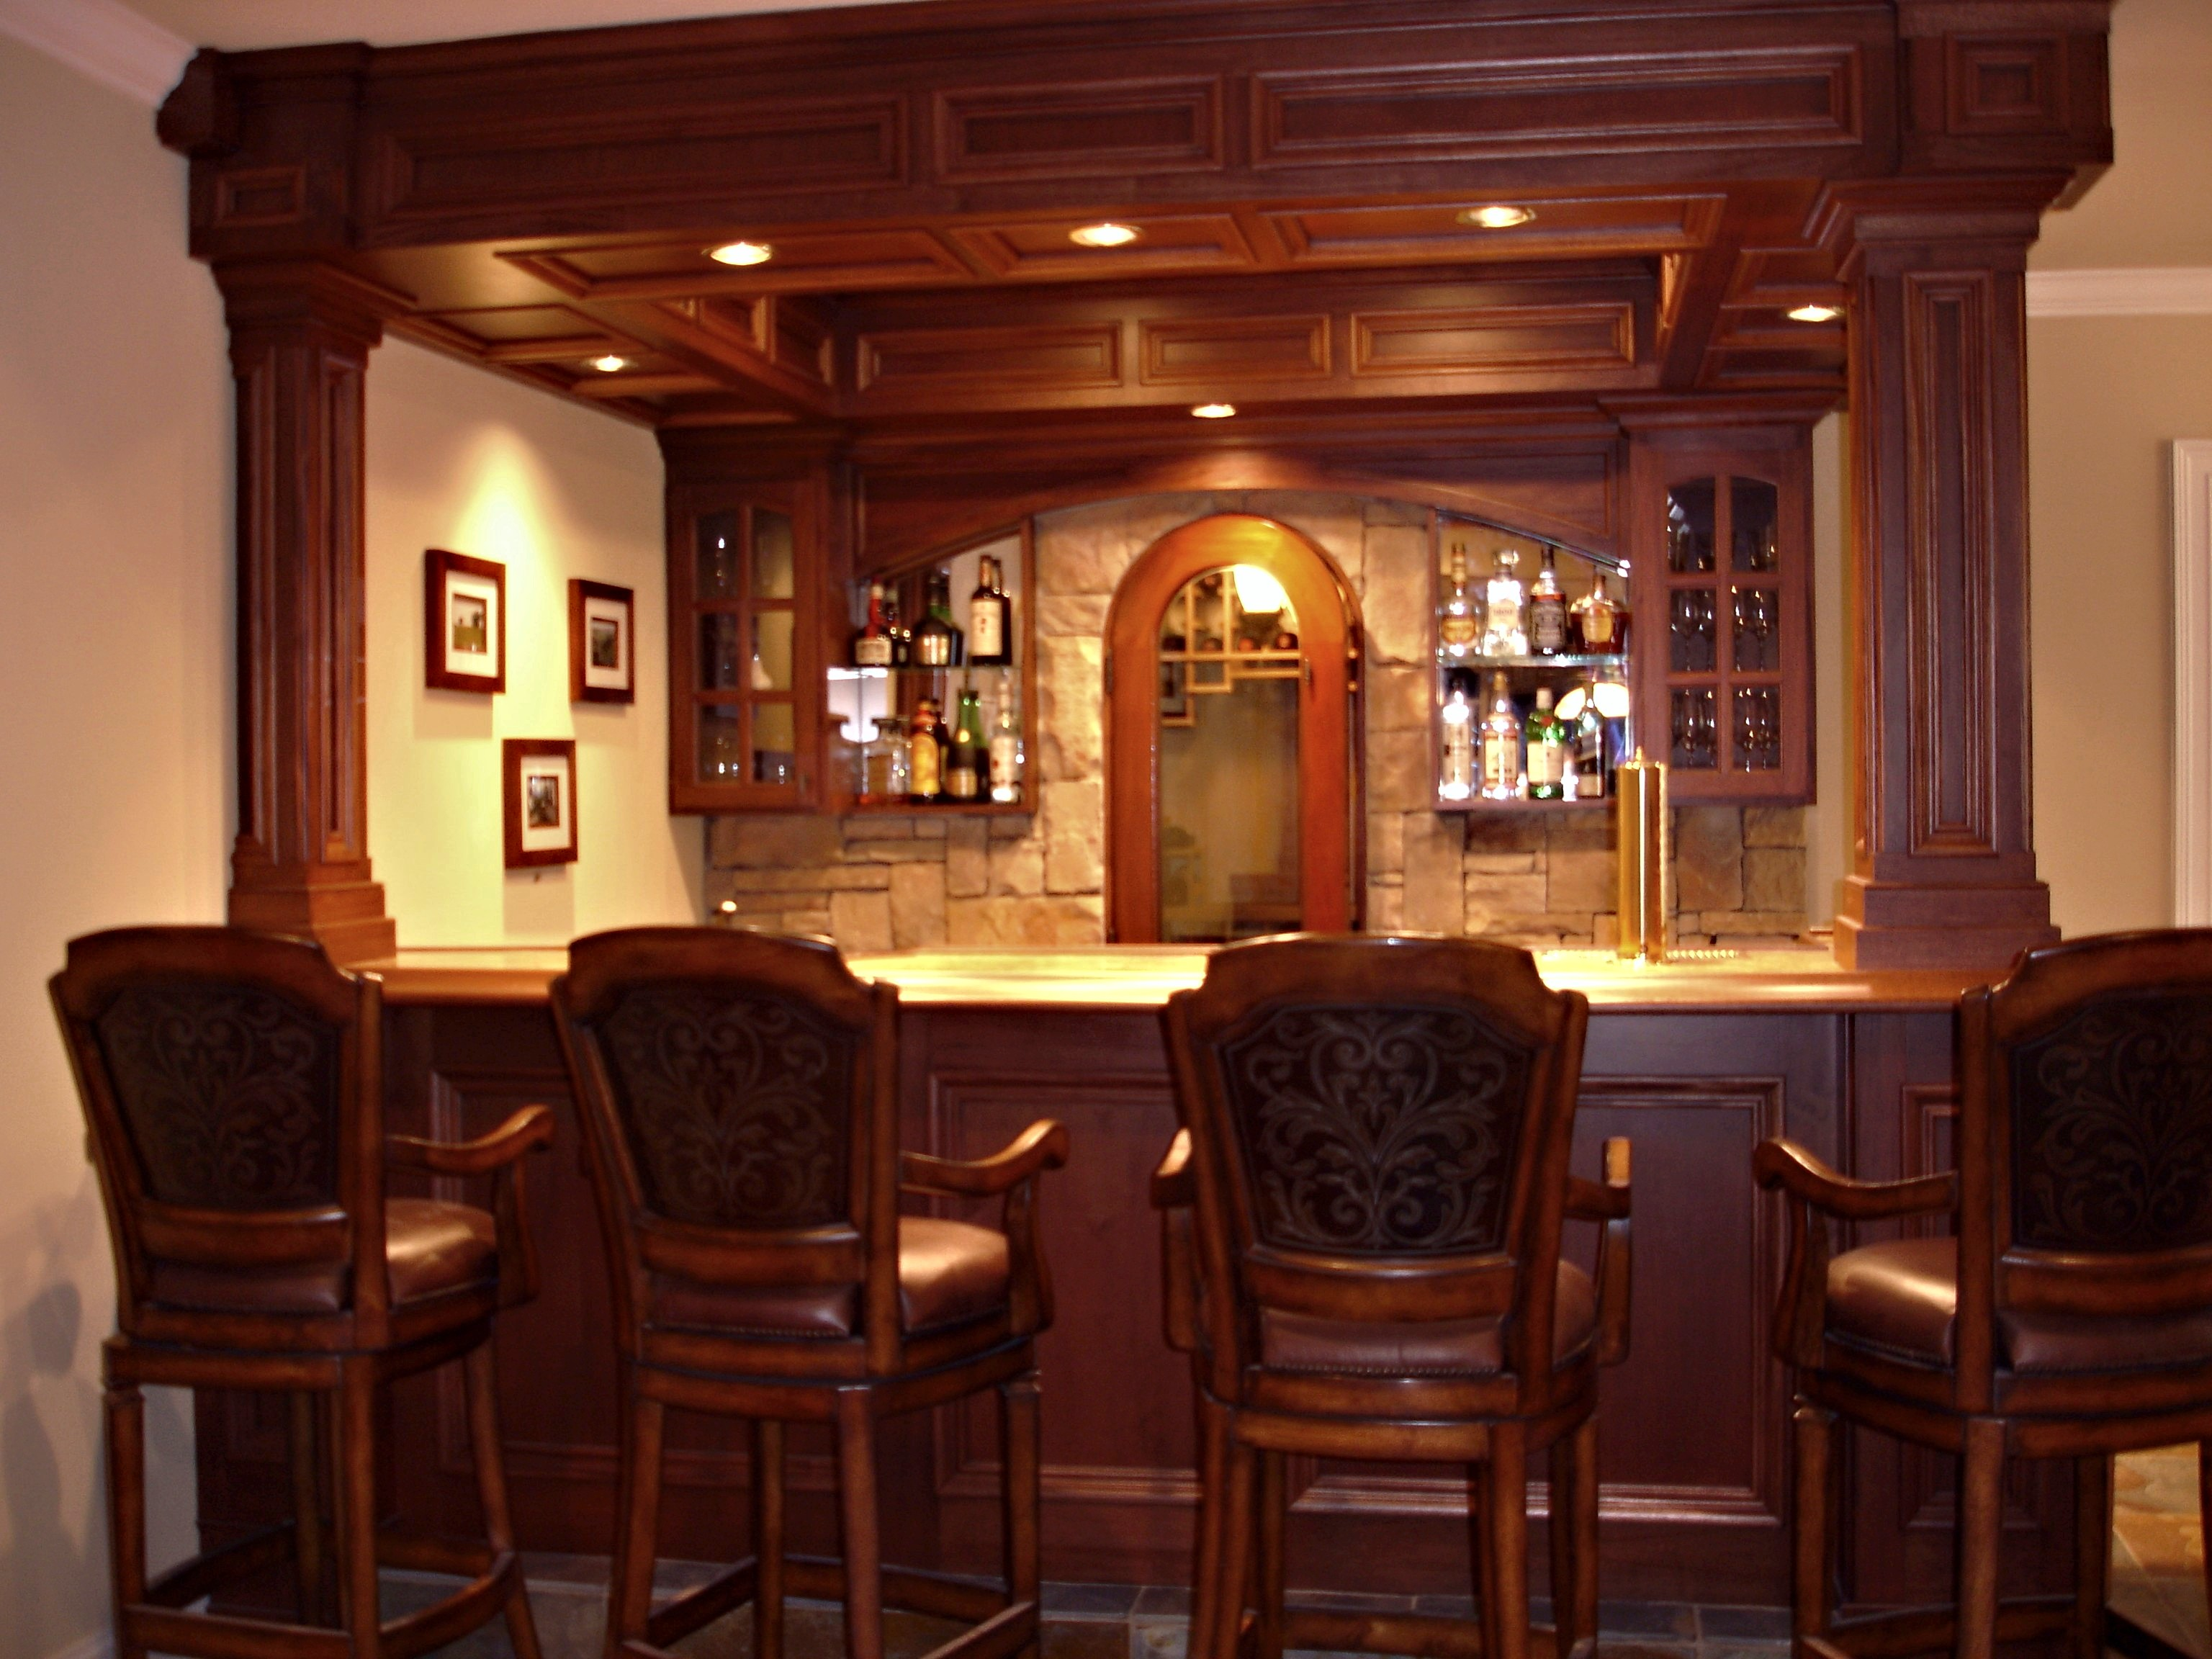 How to build a custom residential bar keystone